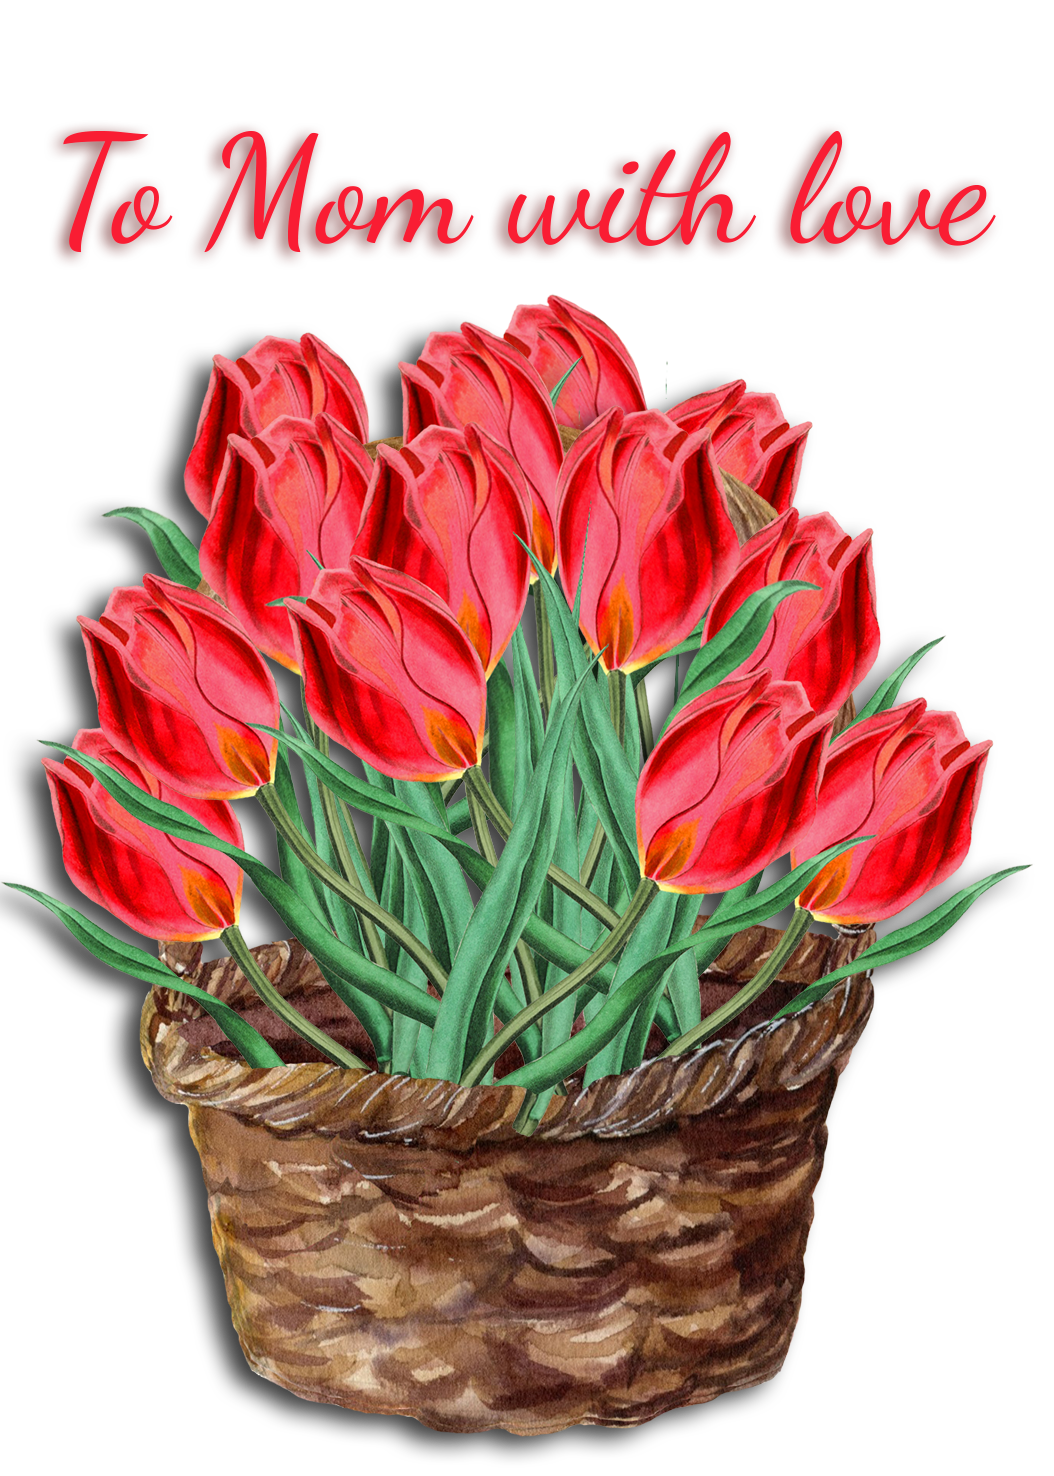 to mom with love basket with red tulips